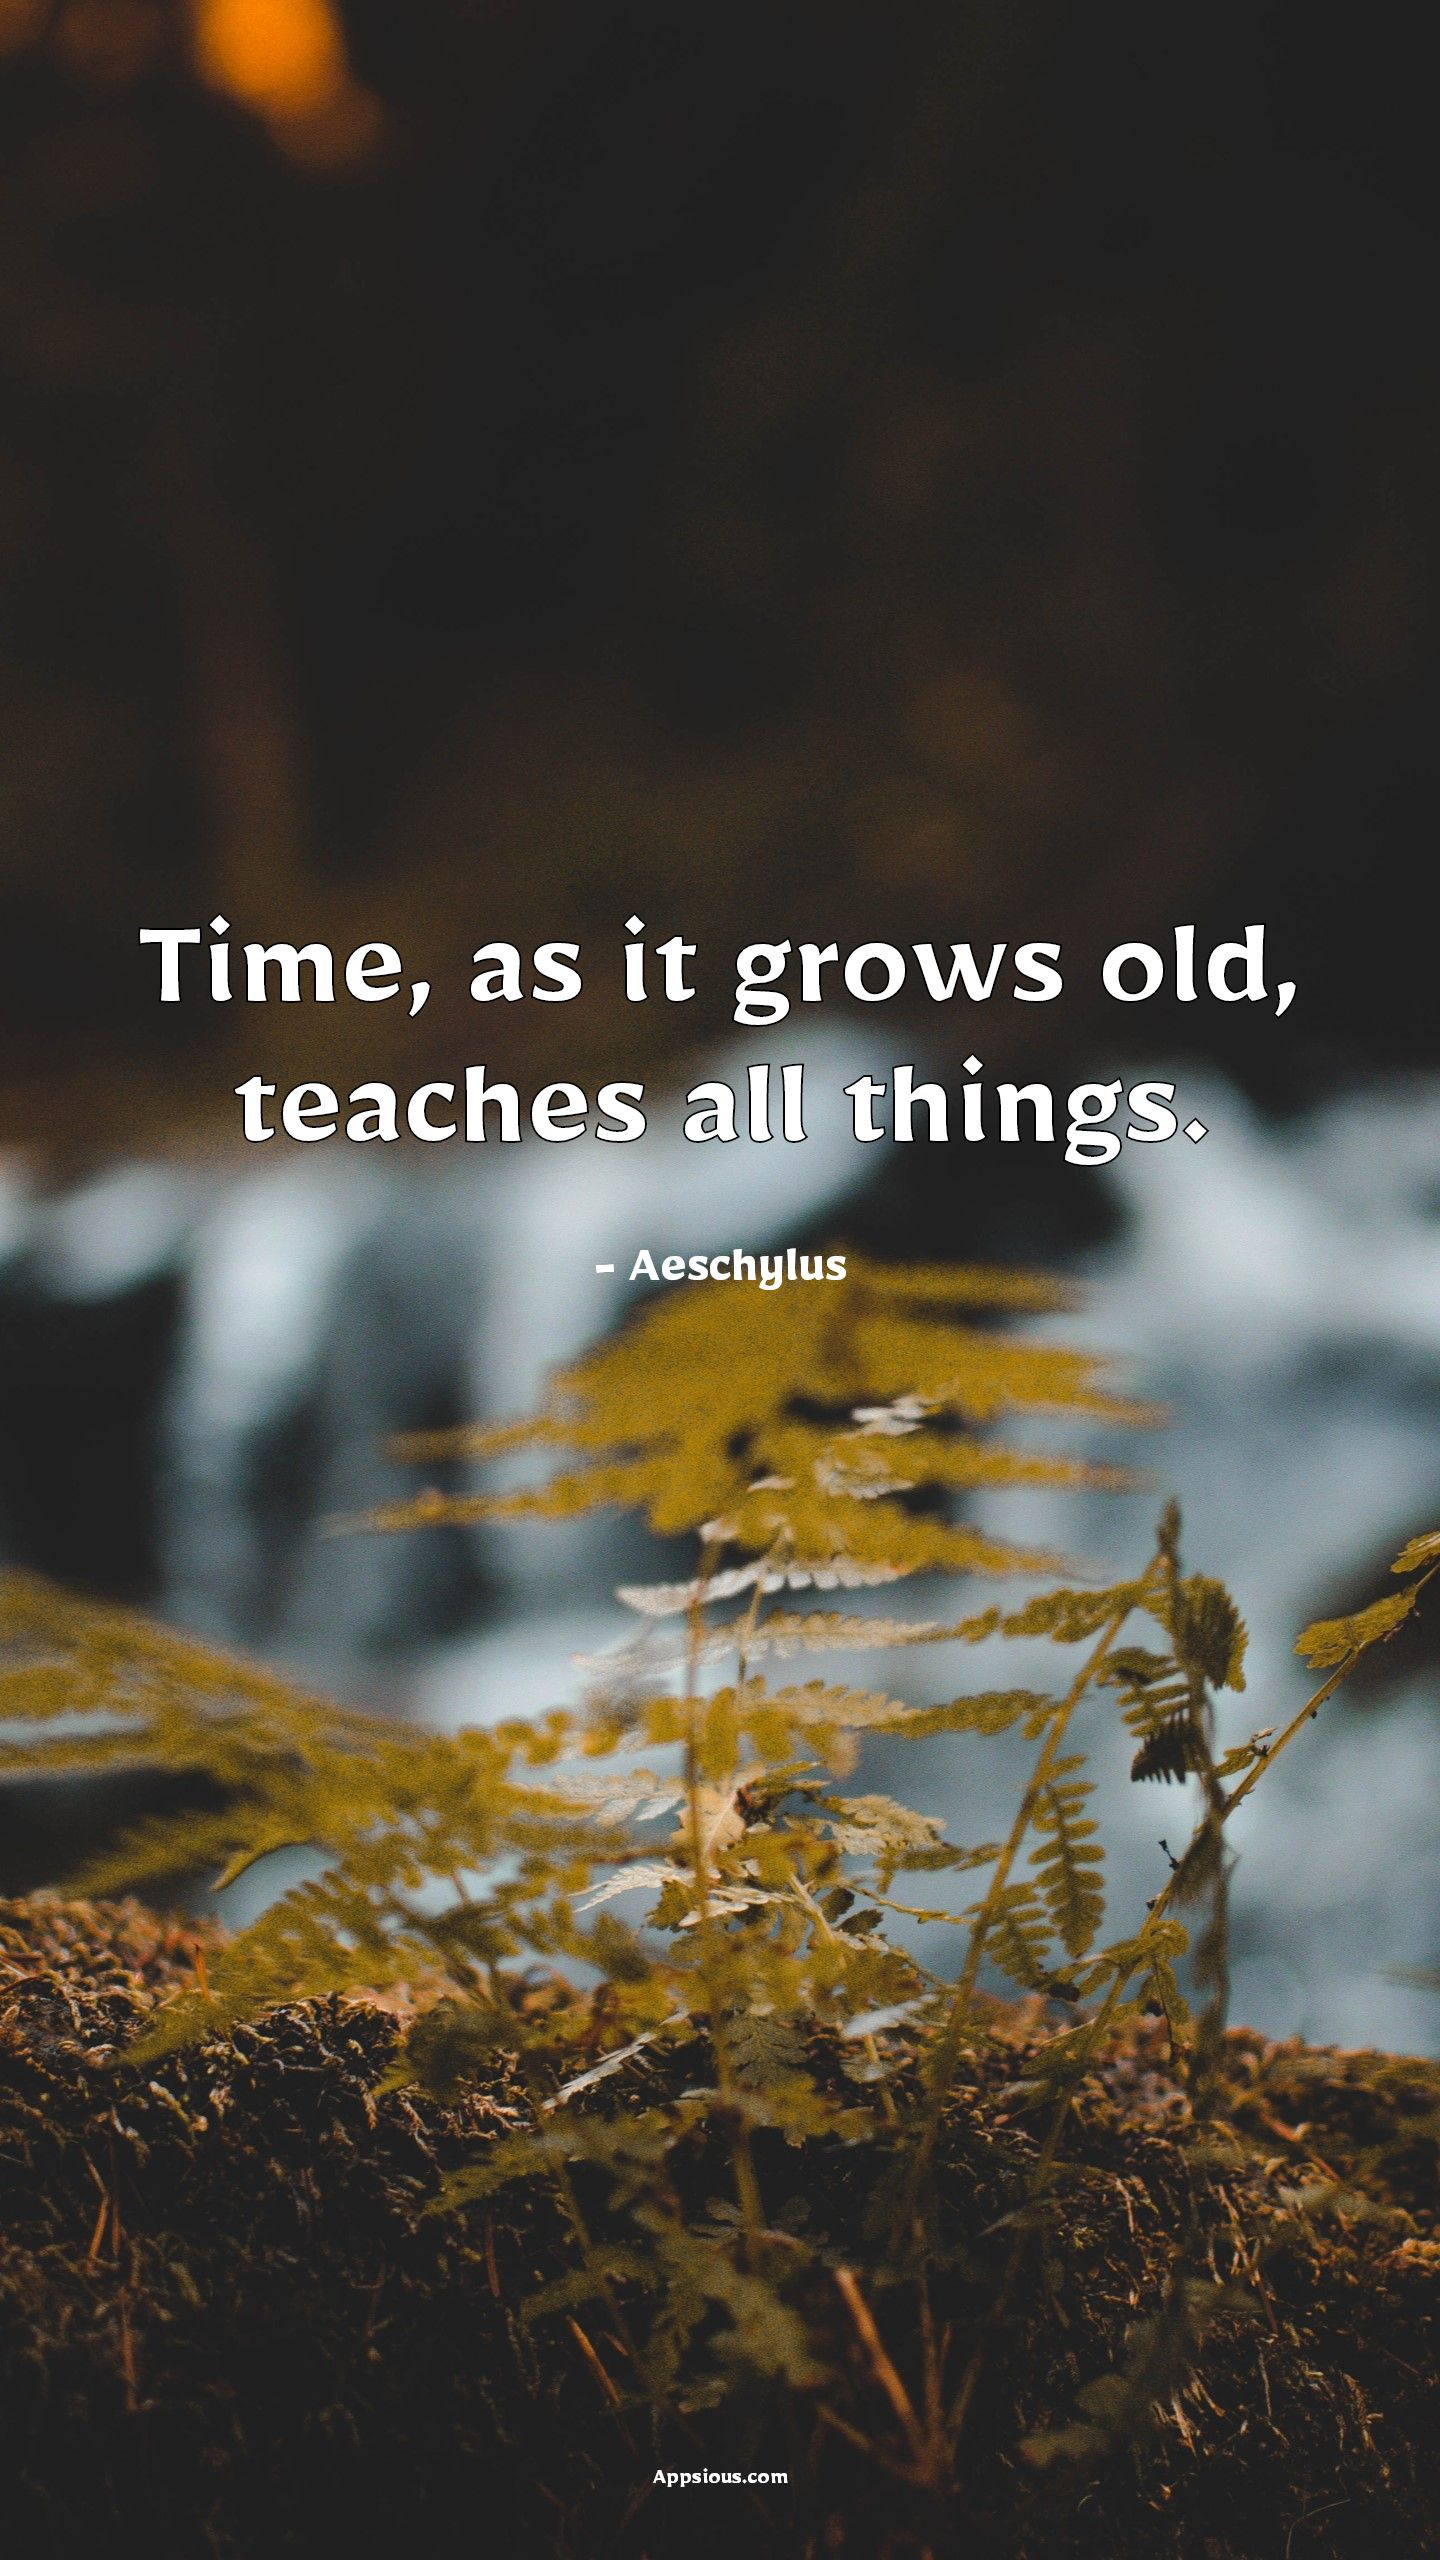 Time, as it grows old, teaches all things.